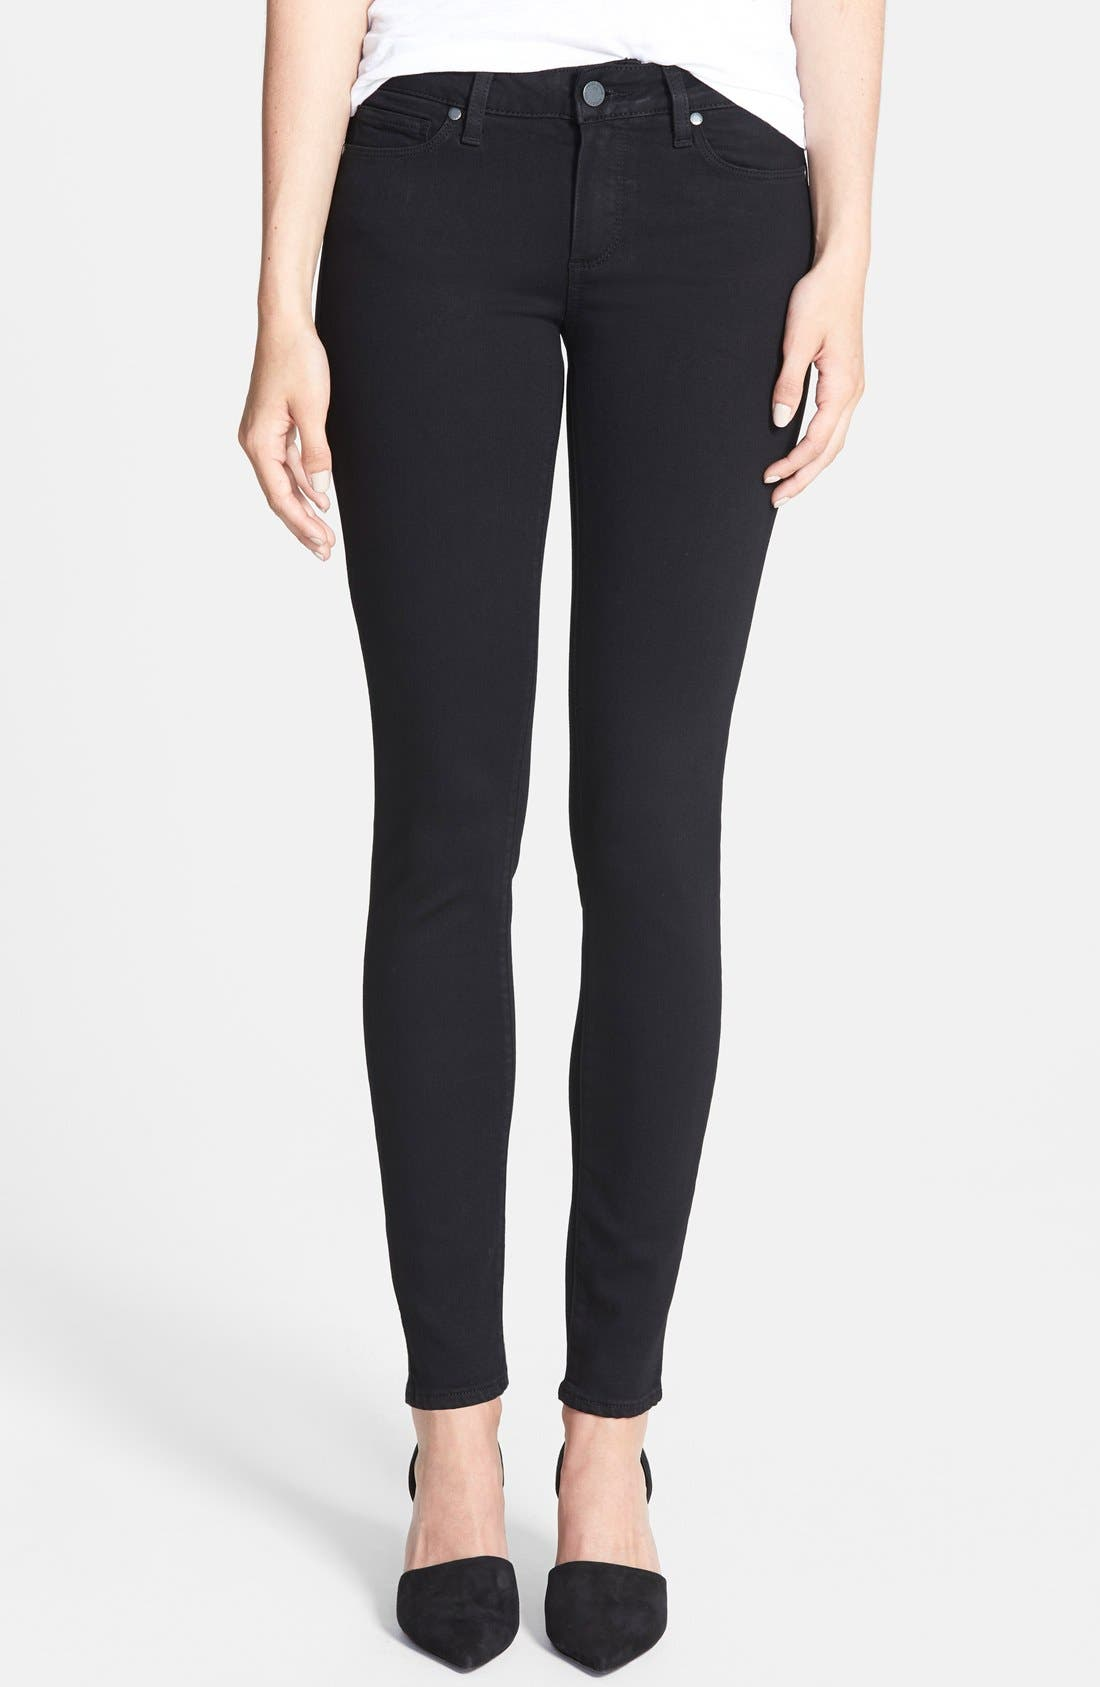 PAIGE Transcend - Verdugo Ultra Skinny Jeans (Black Shadow)